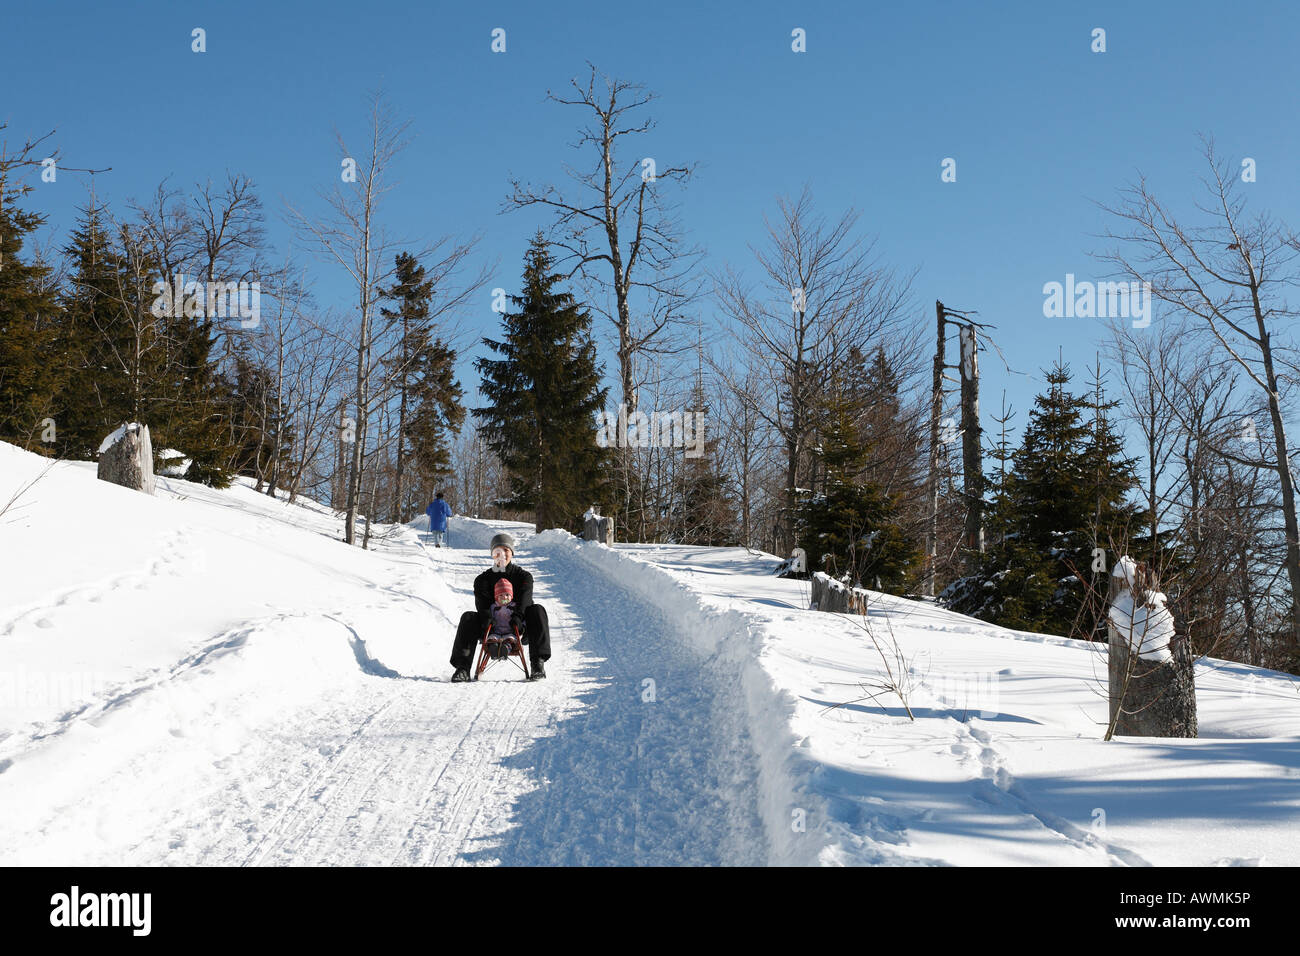 Sledders going down a wintry path, Lusen, Nationalpark Bayerischer Wald (Bavarian Forest National Park), Lower Bavaria, - Stock Image